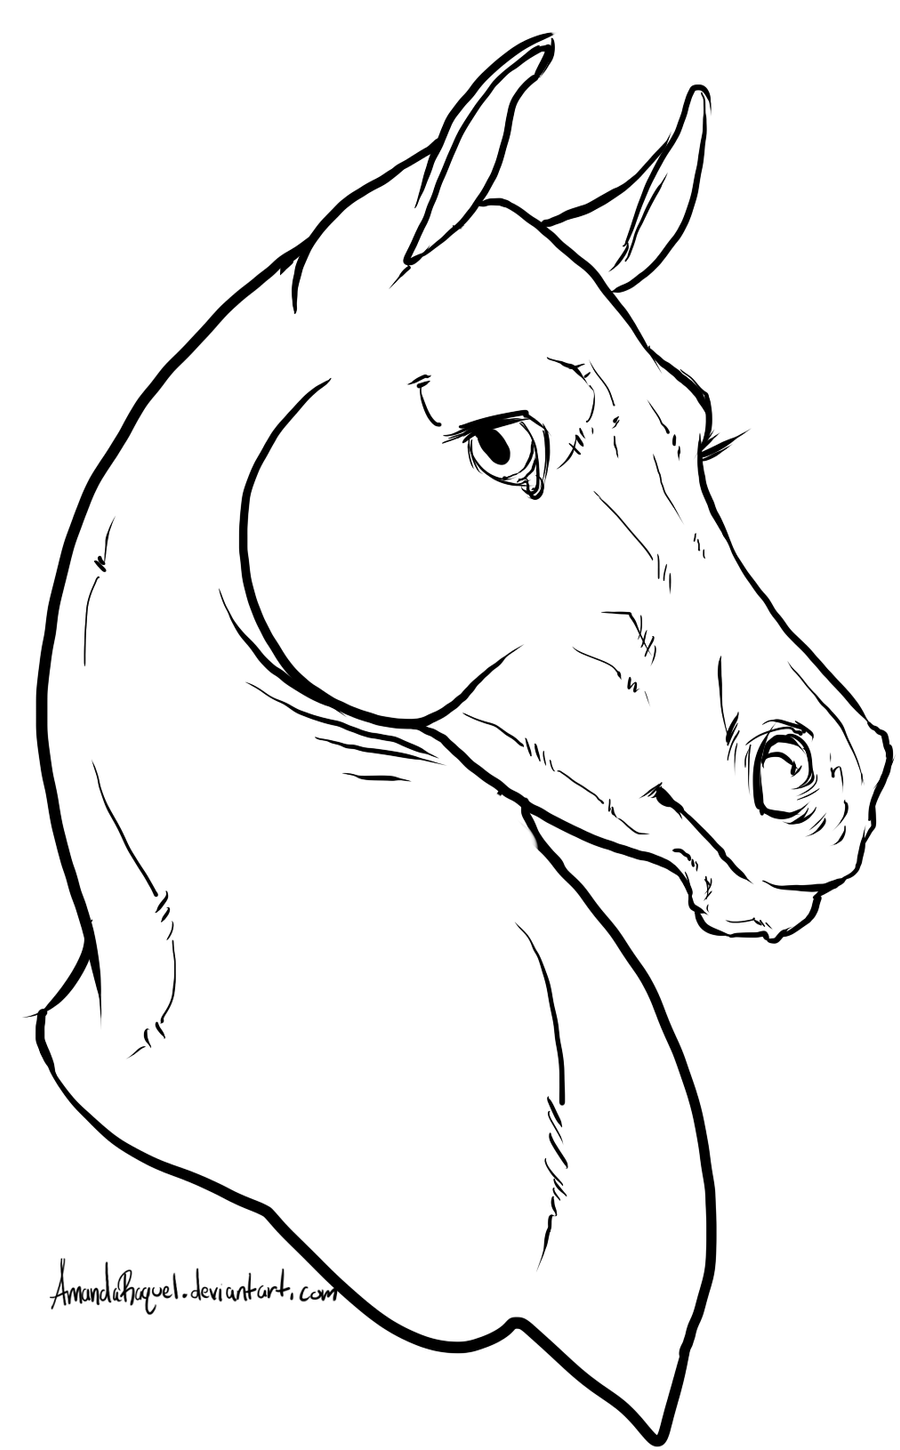 horse face coloring pages - photo#25